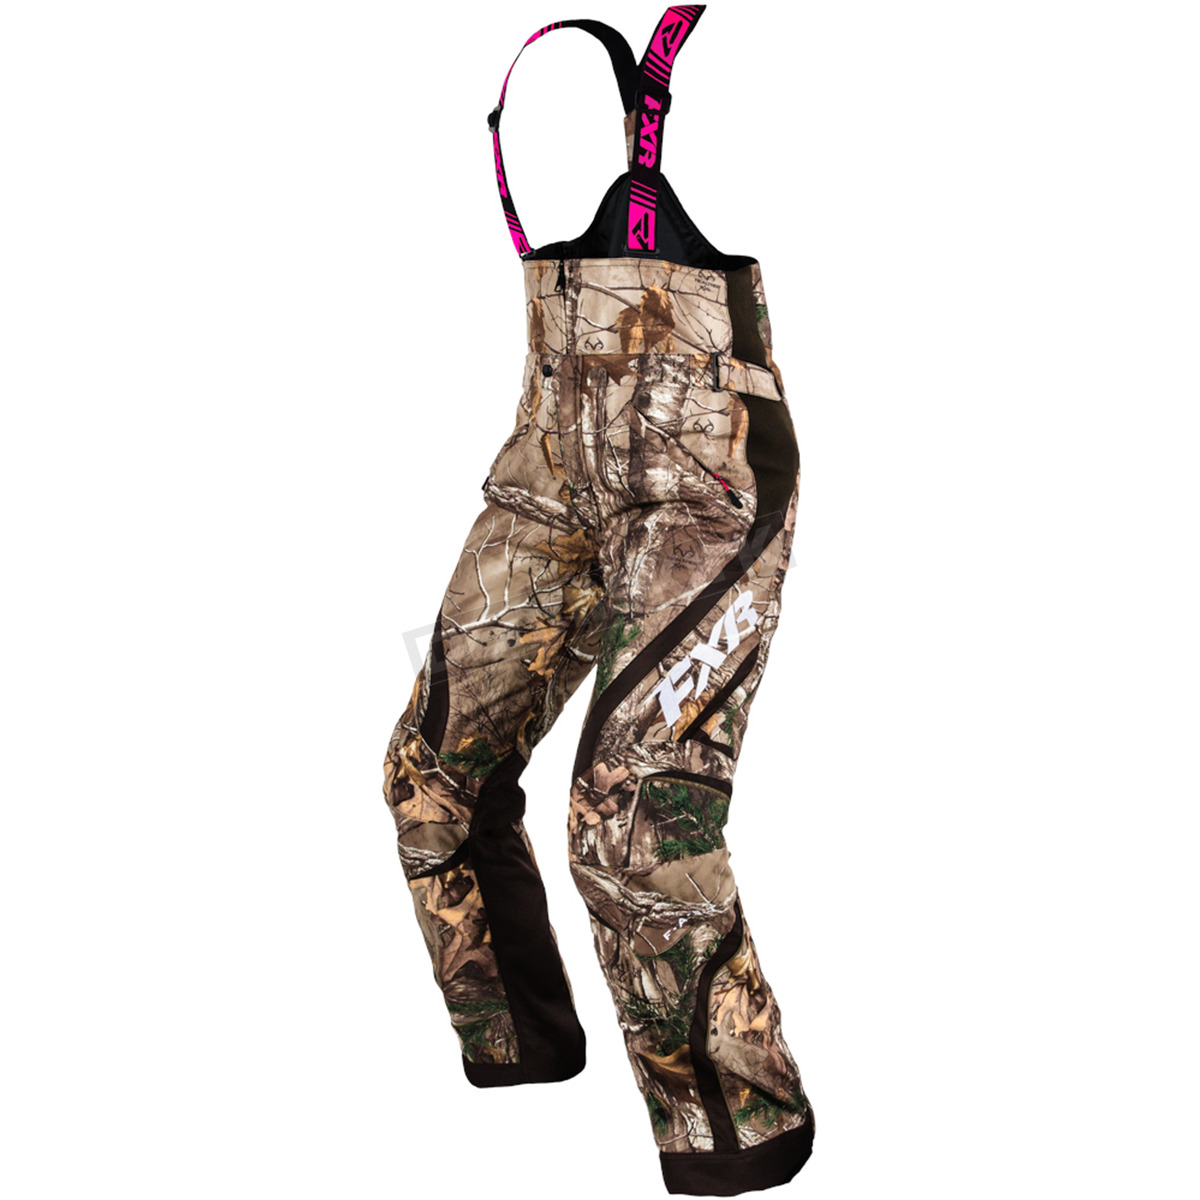 Cool  Tactical Series 74409302 Men39s Realtree Xtra Camo Taclite Pants 36x32